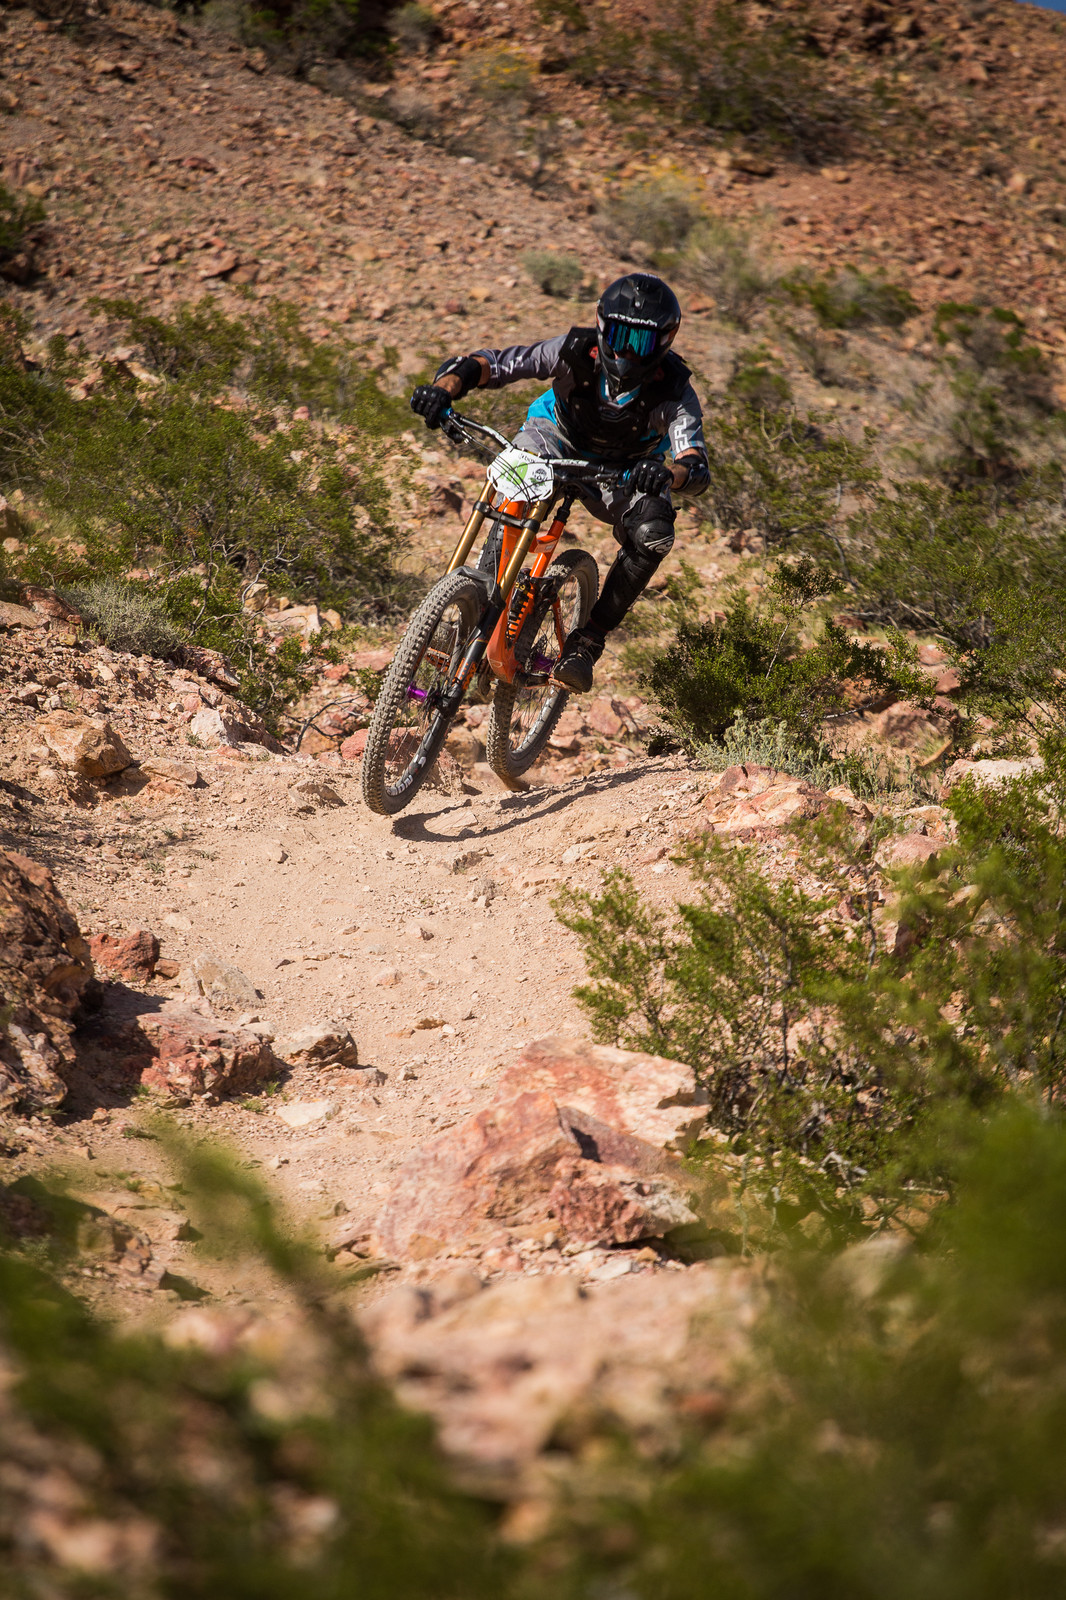 2017 Reaper Madness DH at Bootleg Canyon-27 - 2017 Reaper Madness DH Photos - Mountain Biking Pictures - Vital MTB